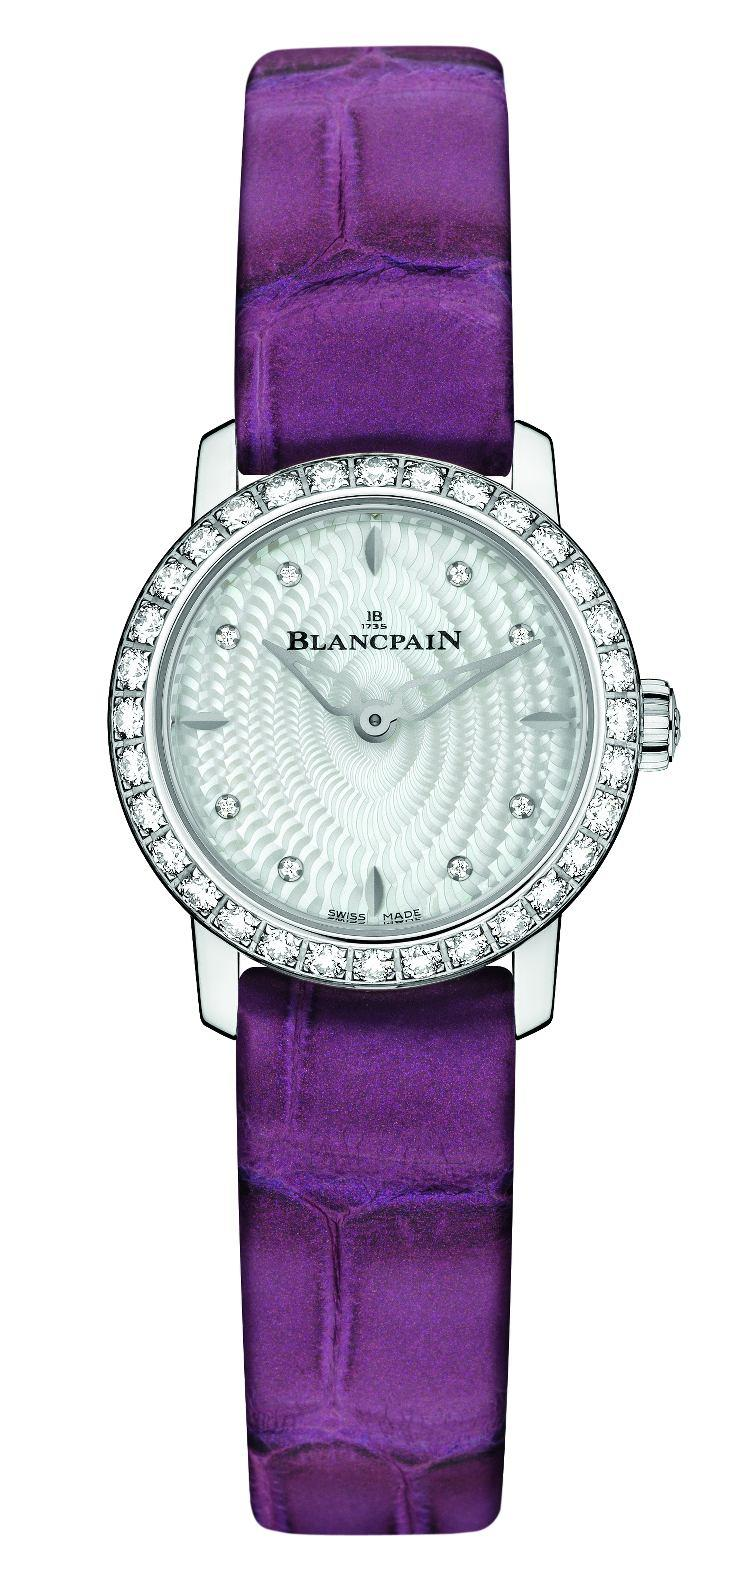 Baselworld 2016 - Blancpain Piece Unique Replica OrologiLadybird